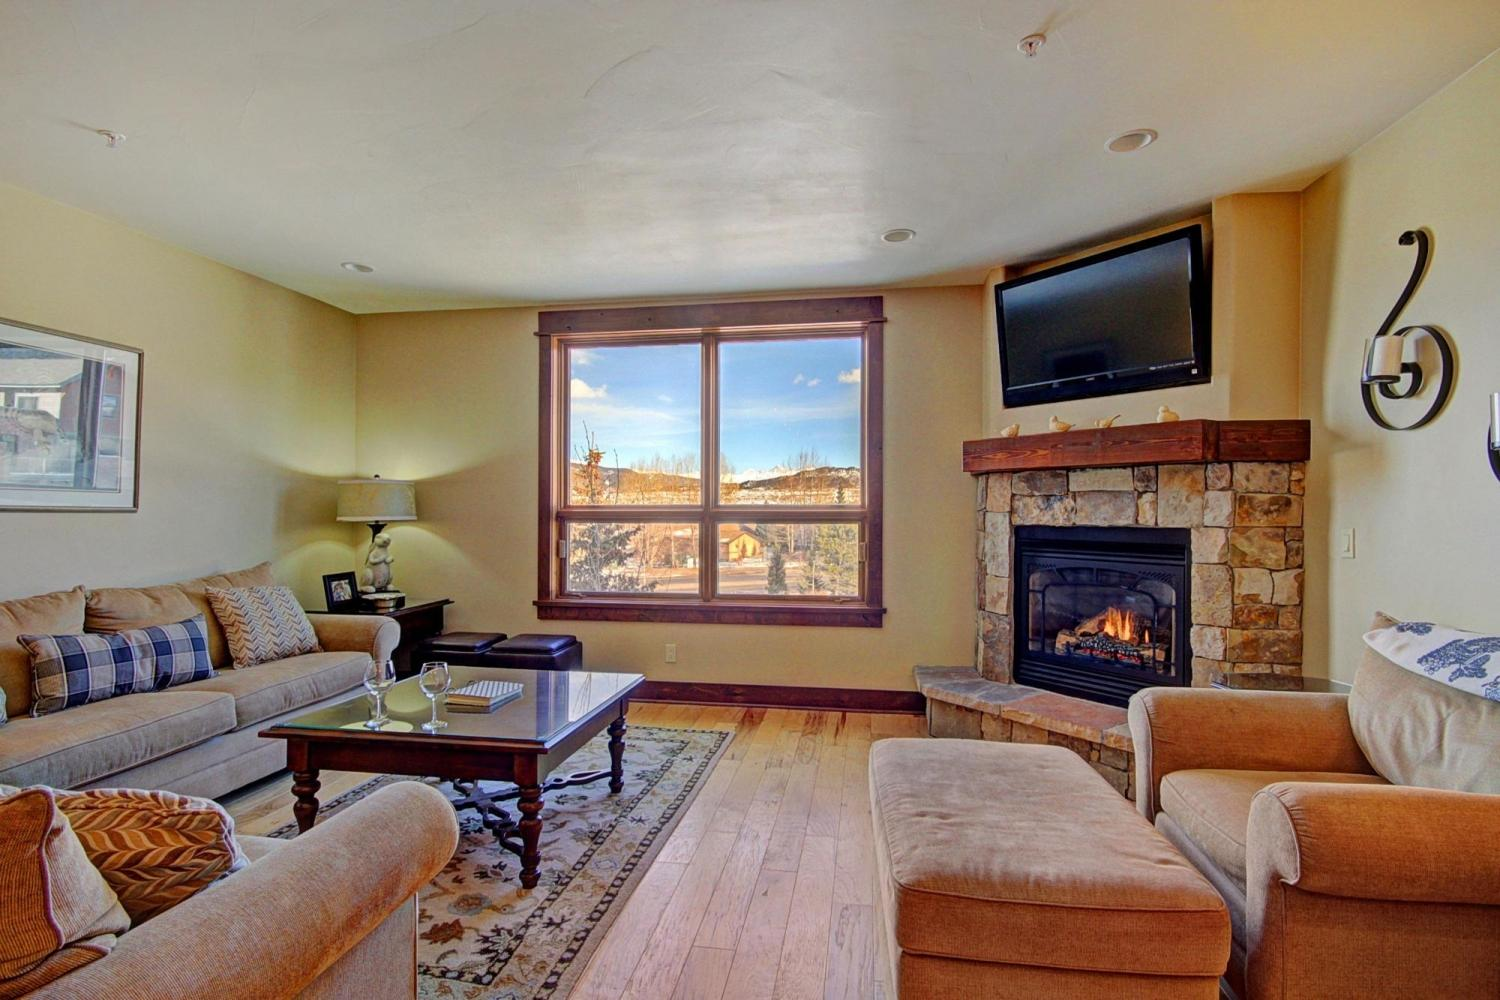 B202 WaterTower Place 2BR 3BA